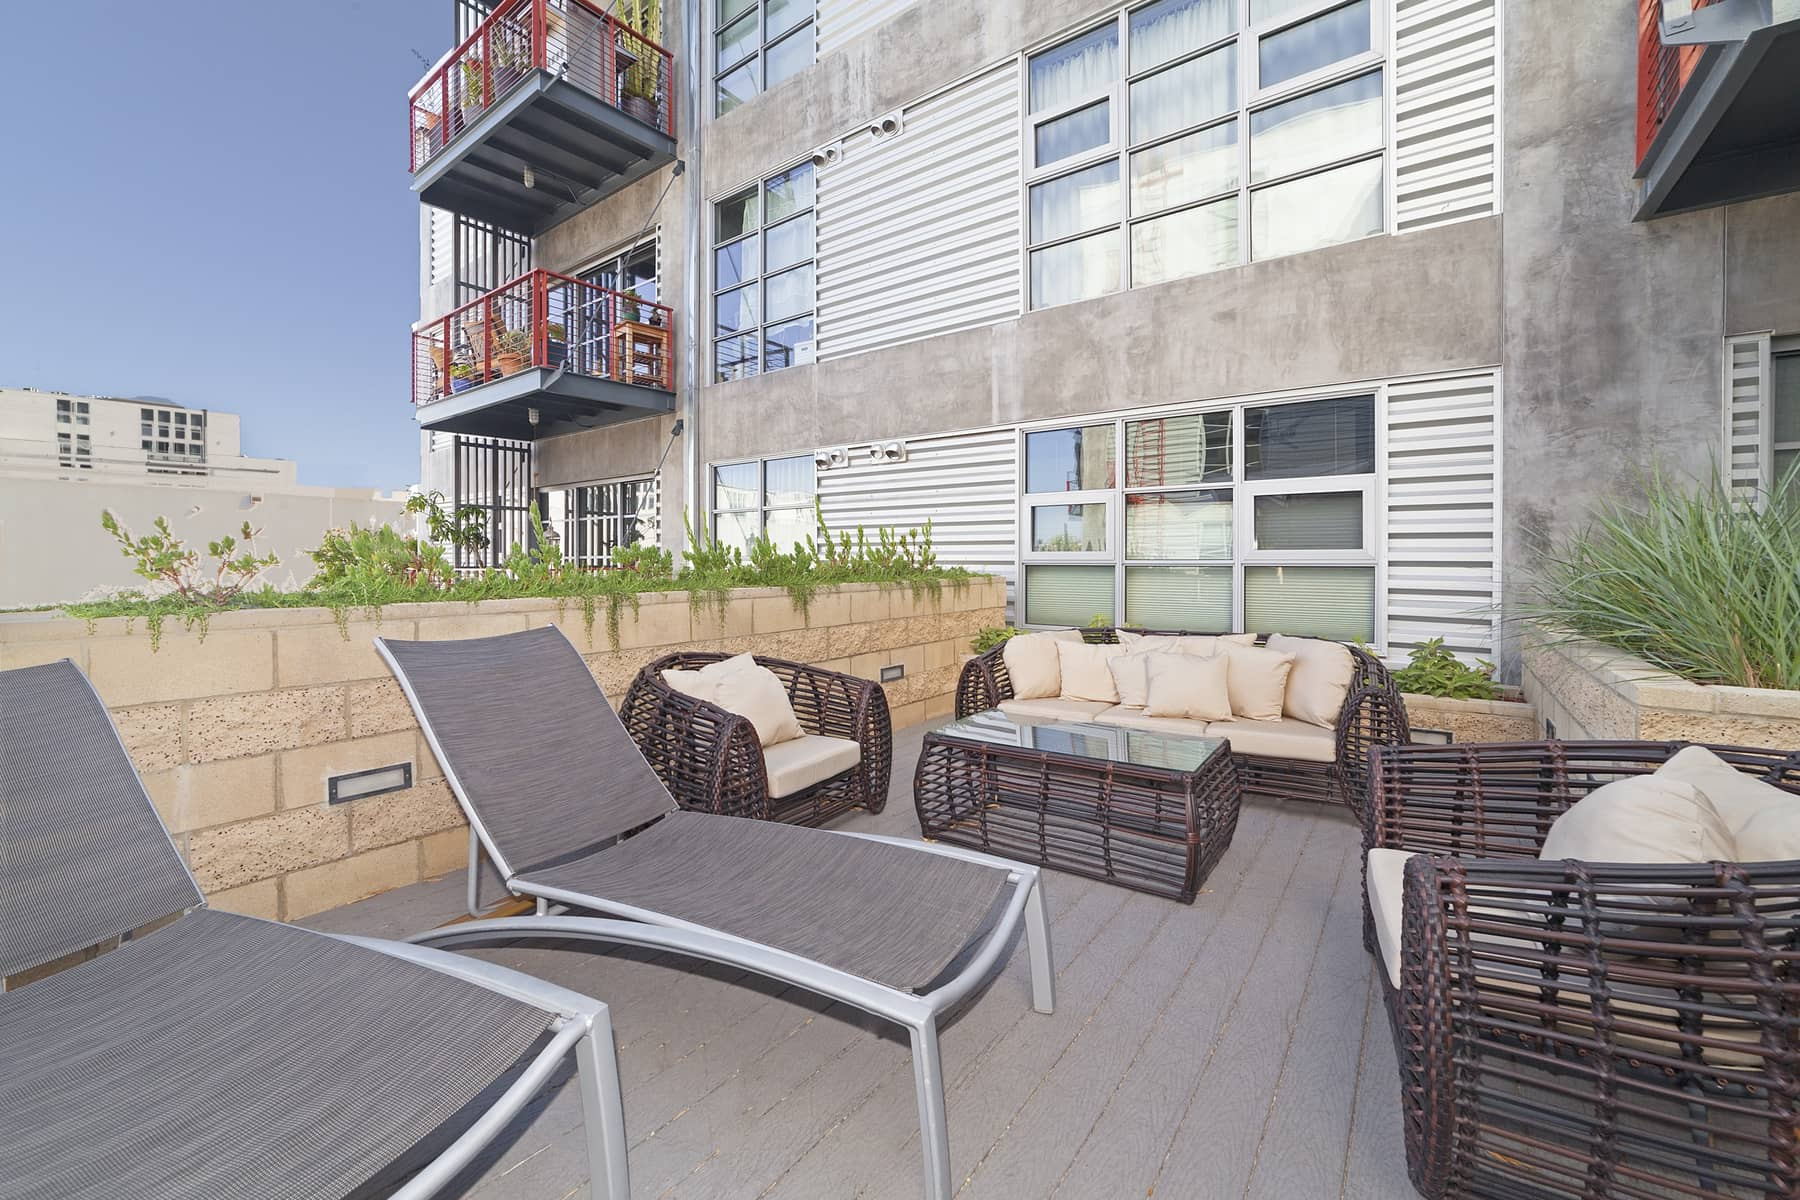 Top all of this off with a walk score of 92! Situated mid-block between Washington and Maxella and a block away from Lincoln, you are just minutes away from restaurants, Abbot Kinney, shopping, theaters, the marina and the beach!